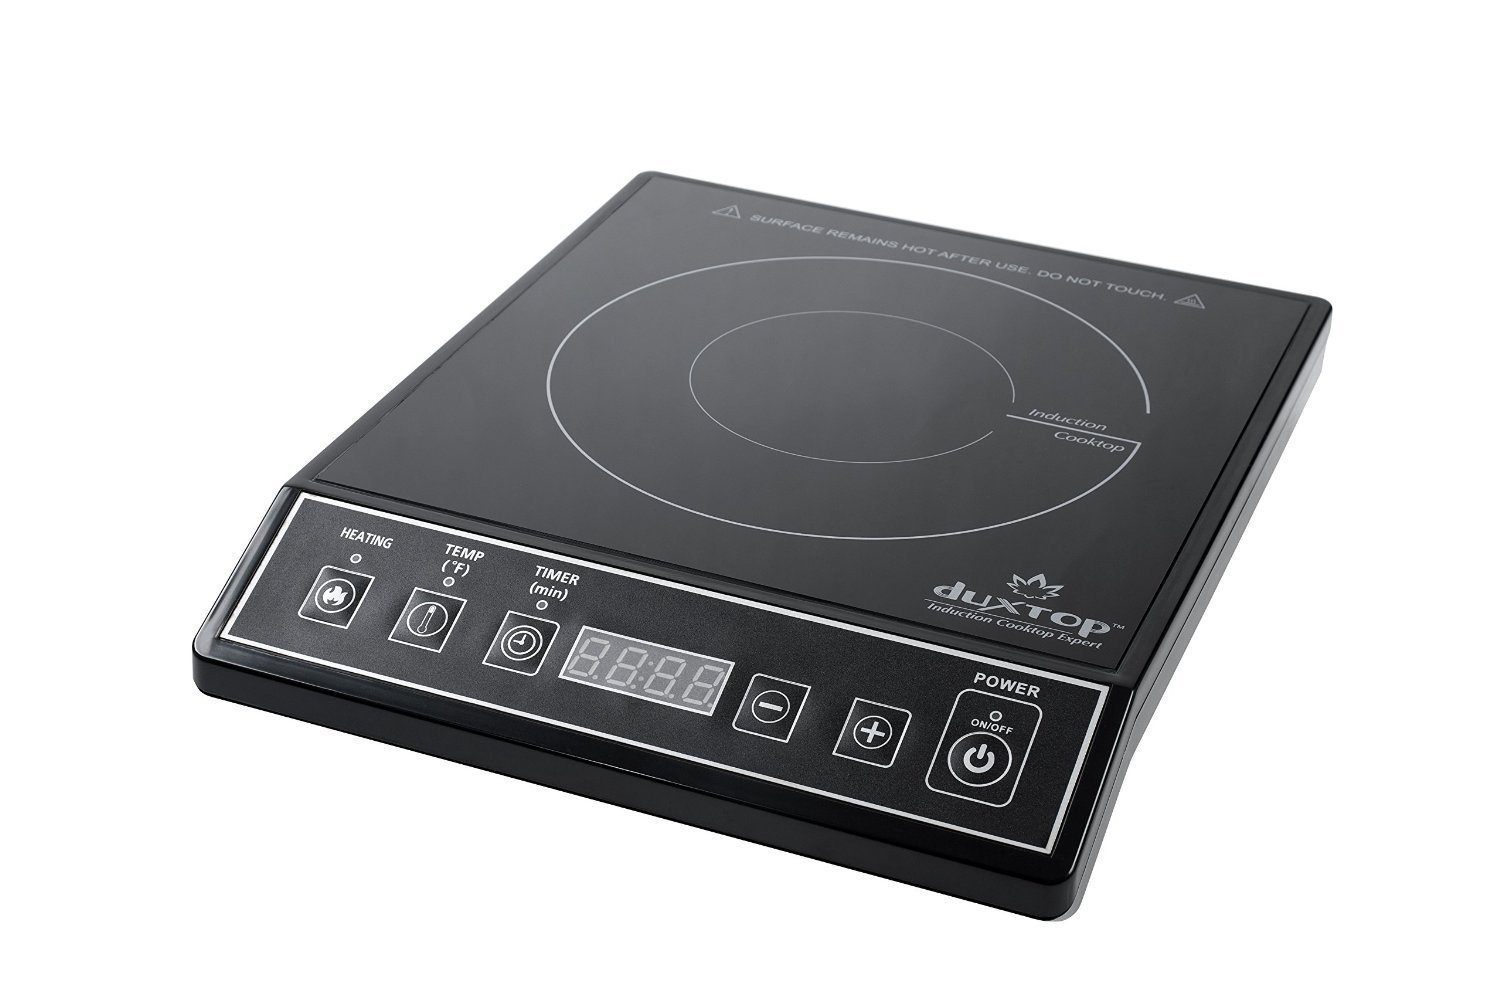 duxtop induction cooktop 9100mc